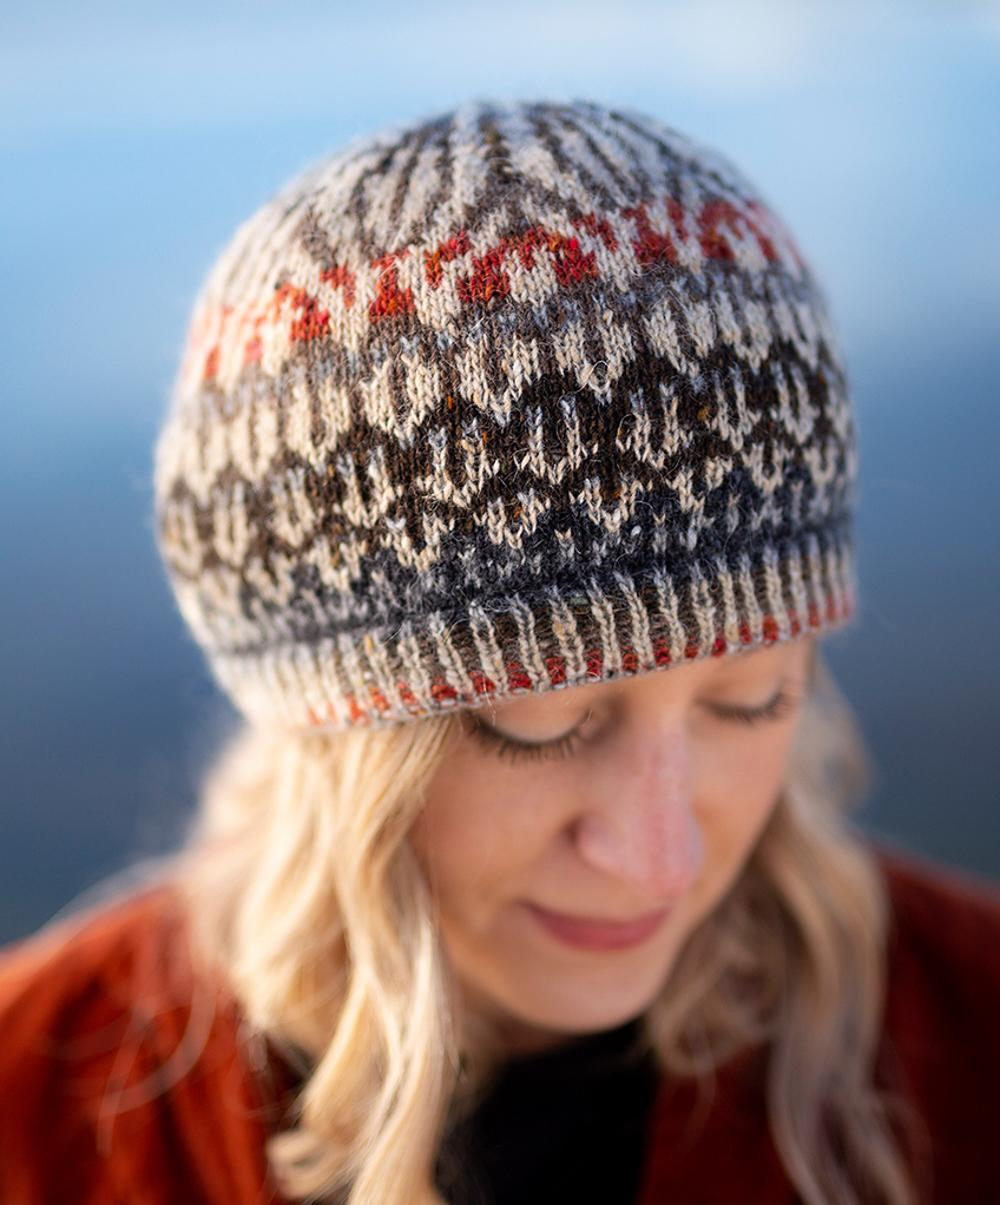 Jane Hunter Models Featherheid - a stranded colourwork hat design based on duck plumage; the background is blue with lochs and skylines